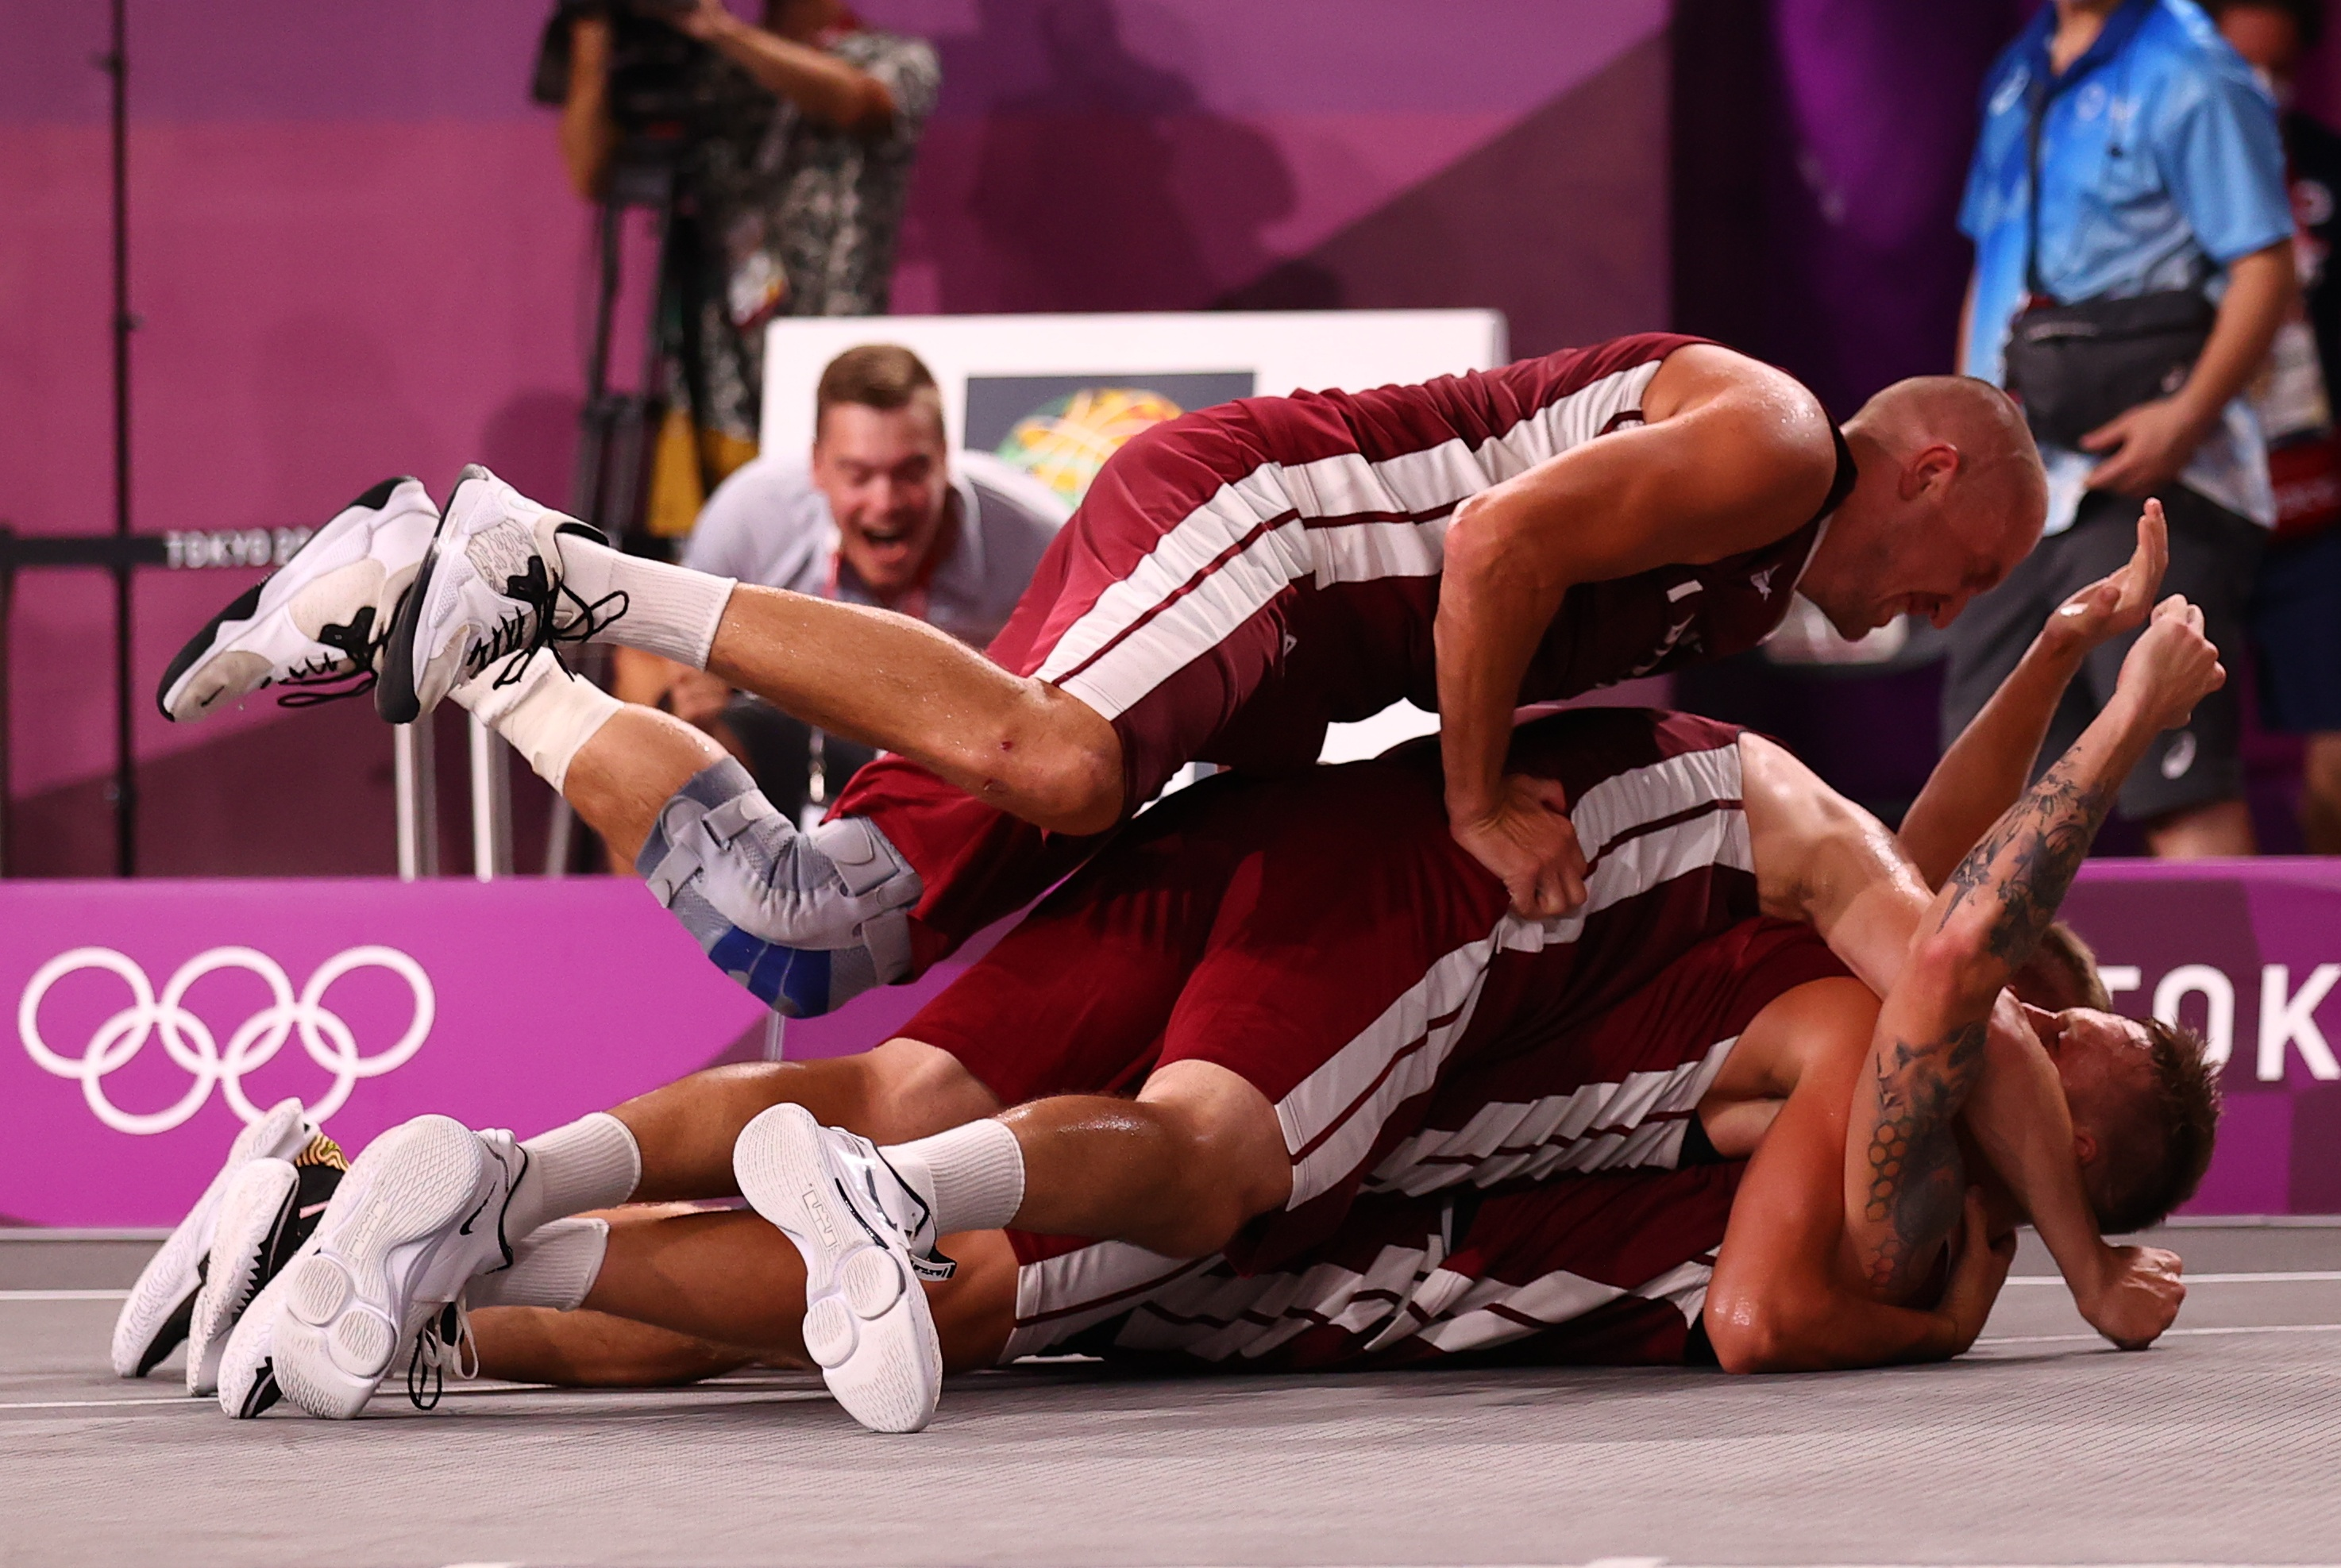 Tokyo 2020 Olympics - Basketball 3x3 - Men - Finals - The Russian Olympic Committee v Latvia - Aomi Urban Sports Park, Tokyo Japan - July 28, 2021. Players of Latvia celebrate victory after the match.